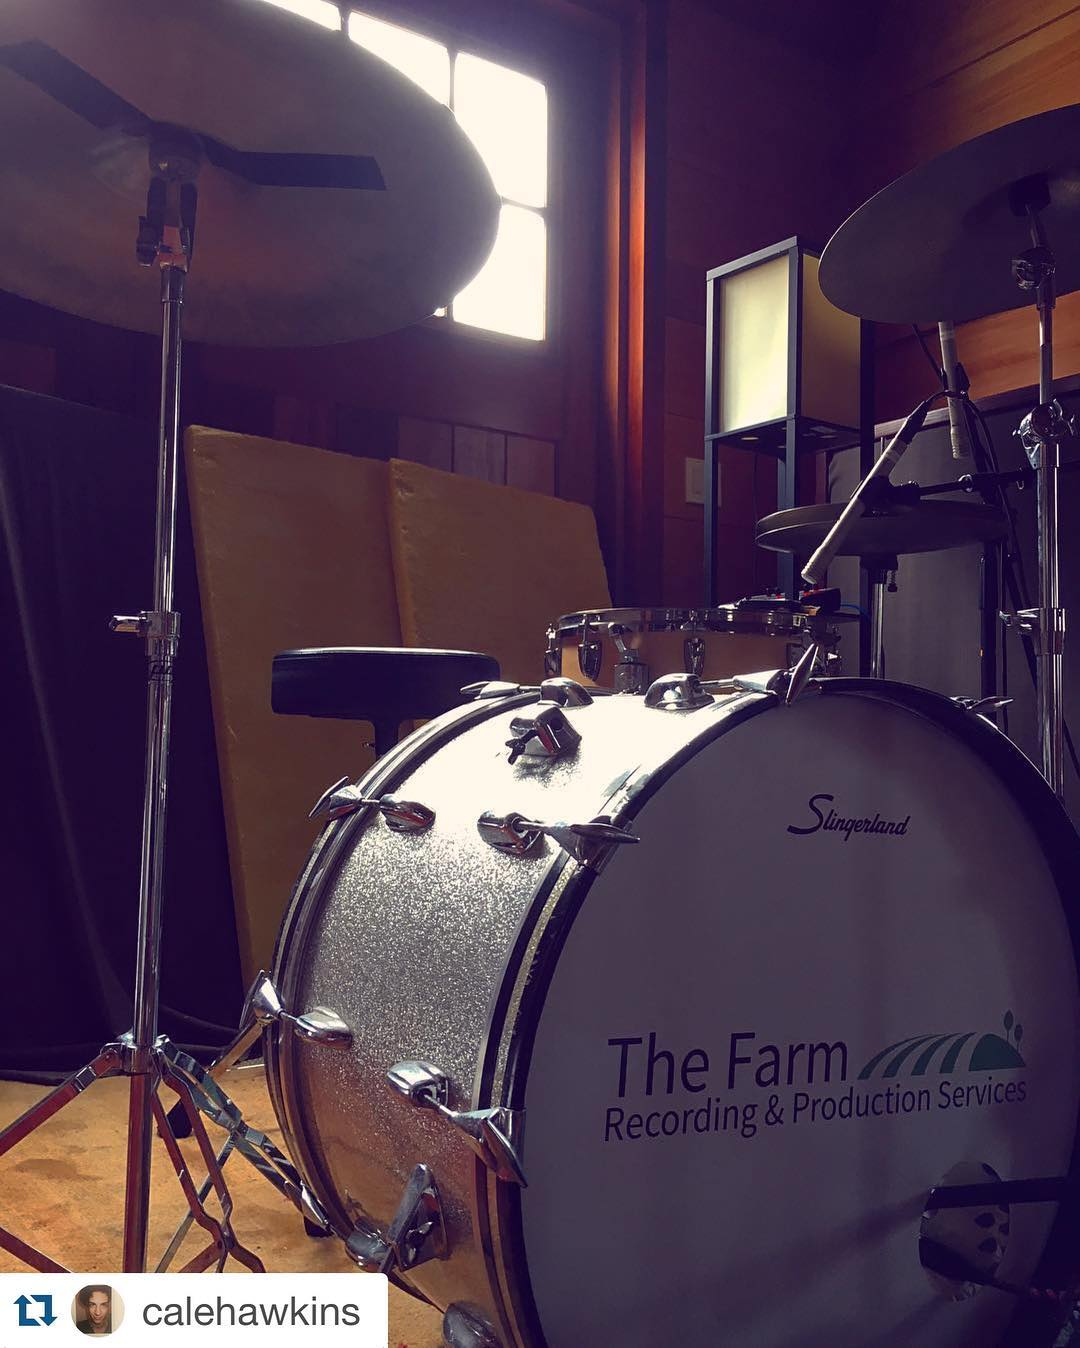 #Repost @calehawkins with @repostapp.  ・・・  Getting out of the city to record drums, percussion and sonic experimentations for two new originals. Great to be back at @thefarmrecording #thefarmstudio